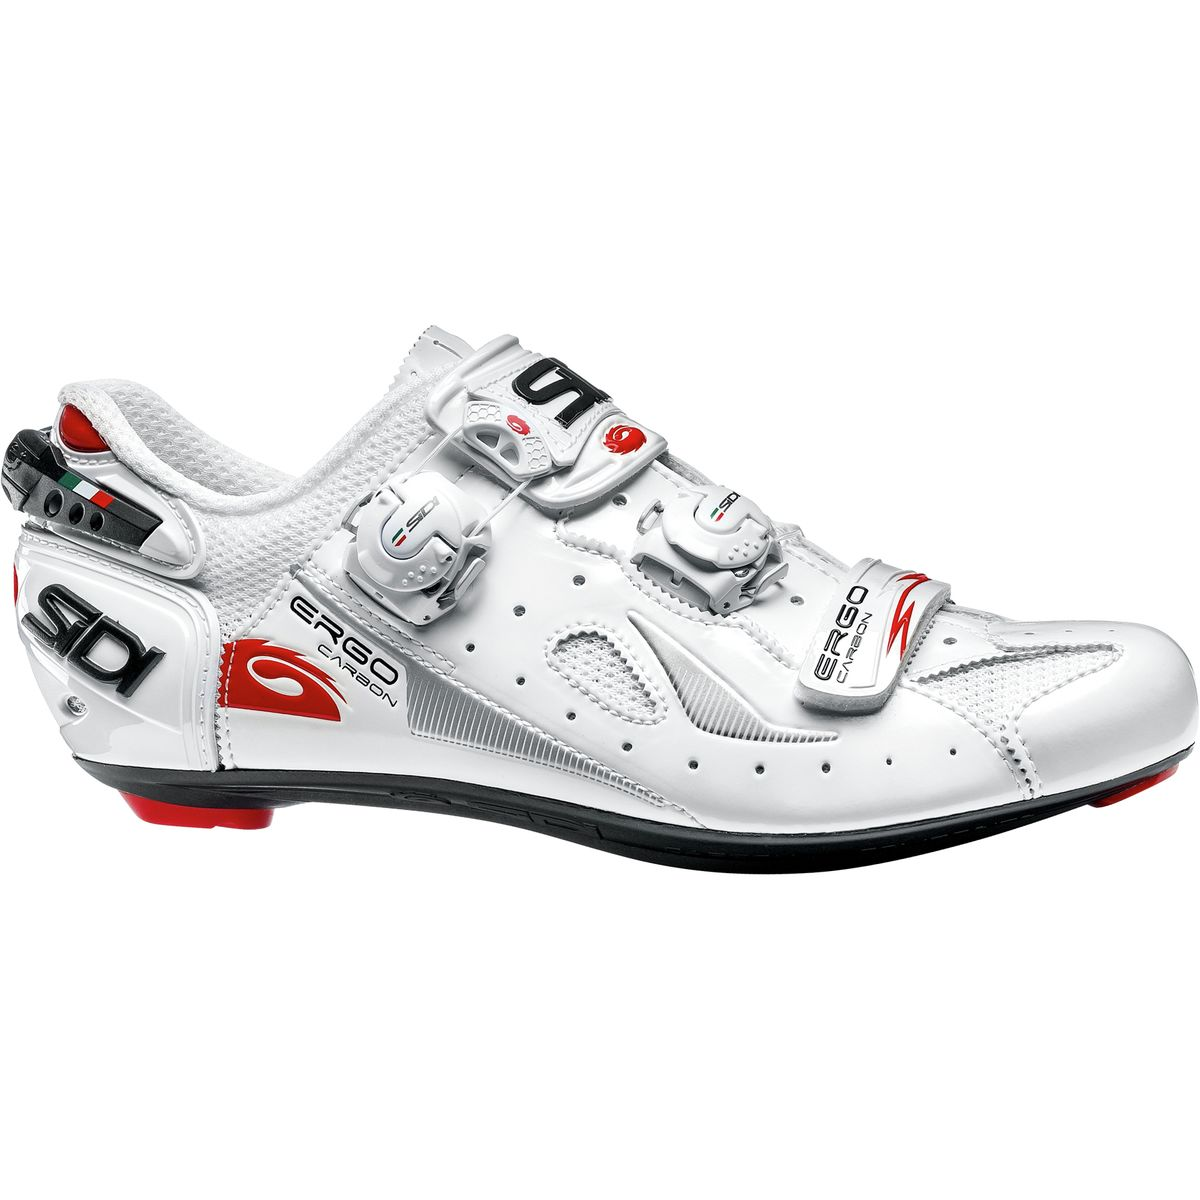 sidi ergo 4 carbon cycling shoe s competitive cyclist